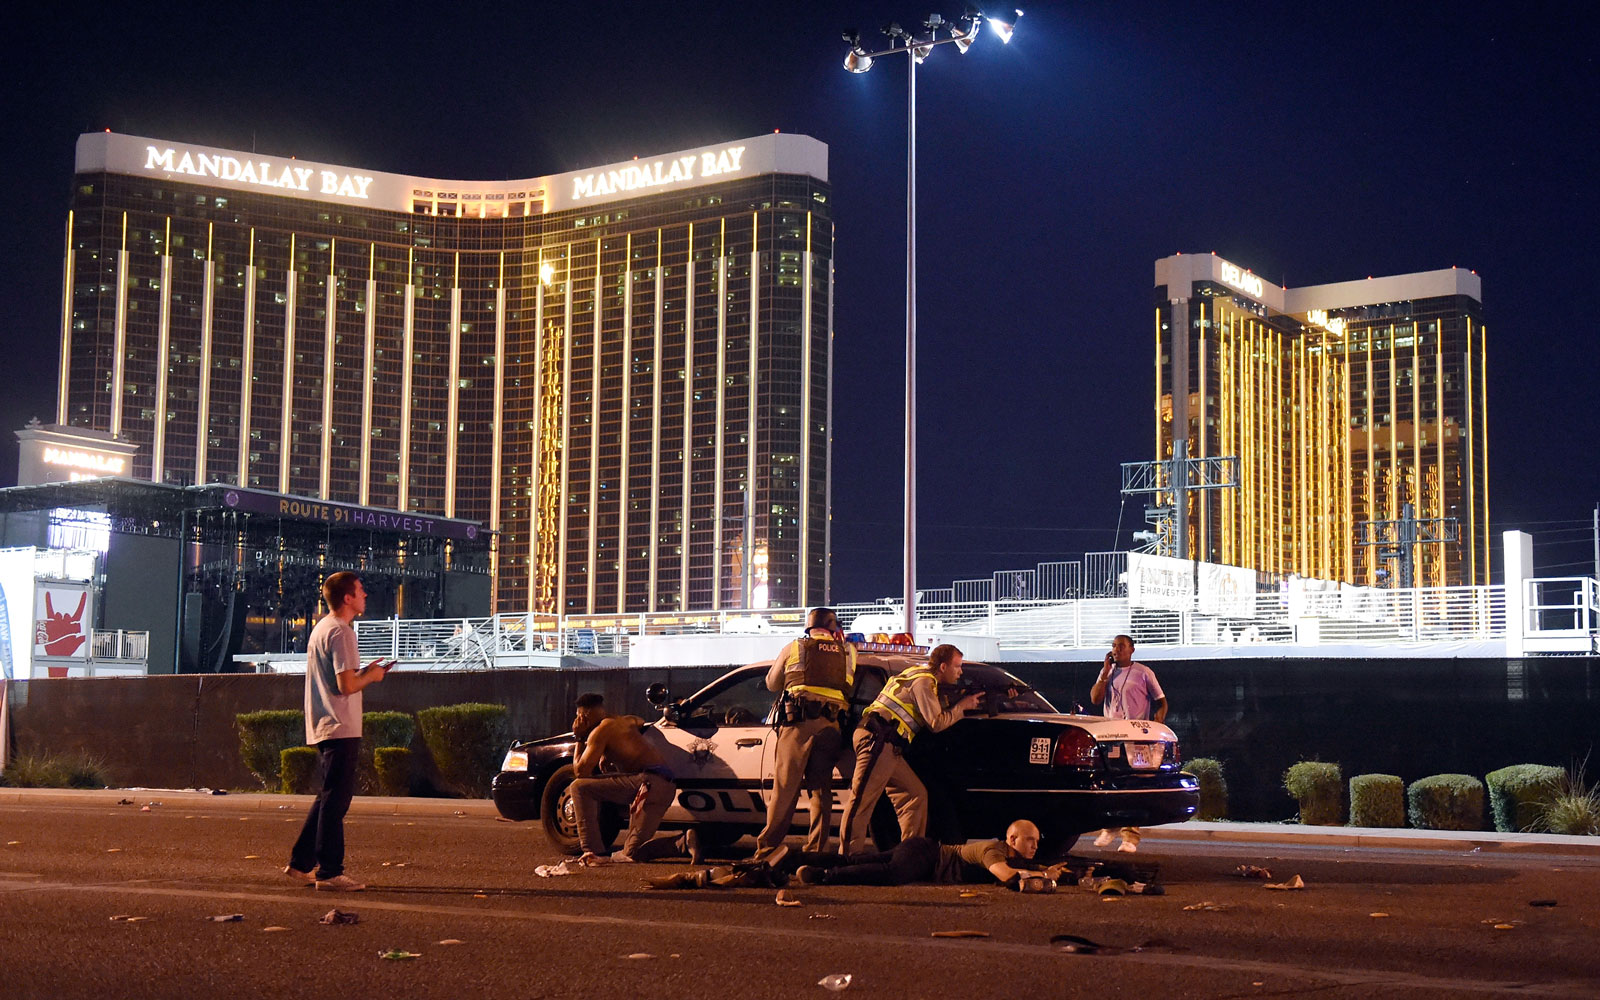 Las Vegas Shooting: Hotels and Airport Reopen After Deadly Concert Massacre